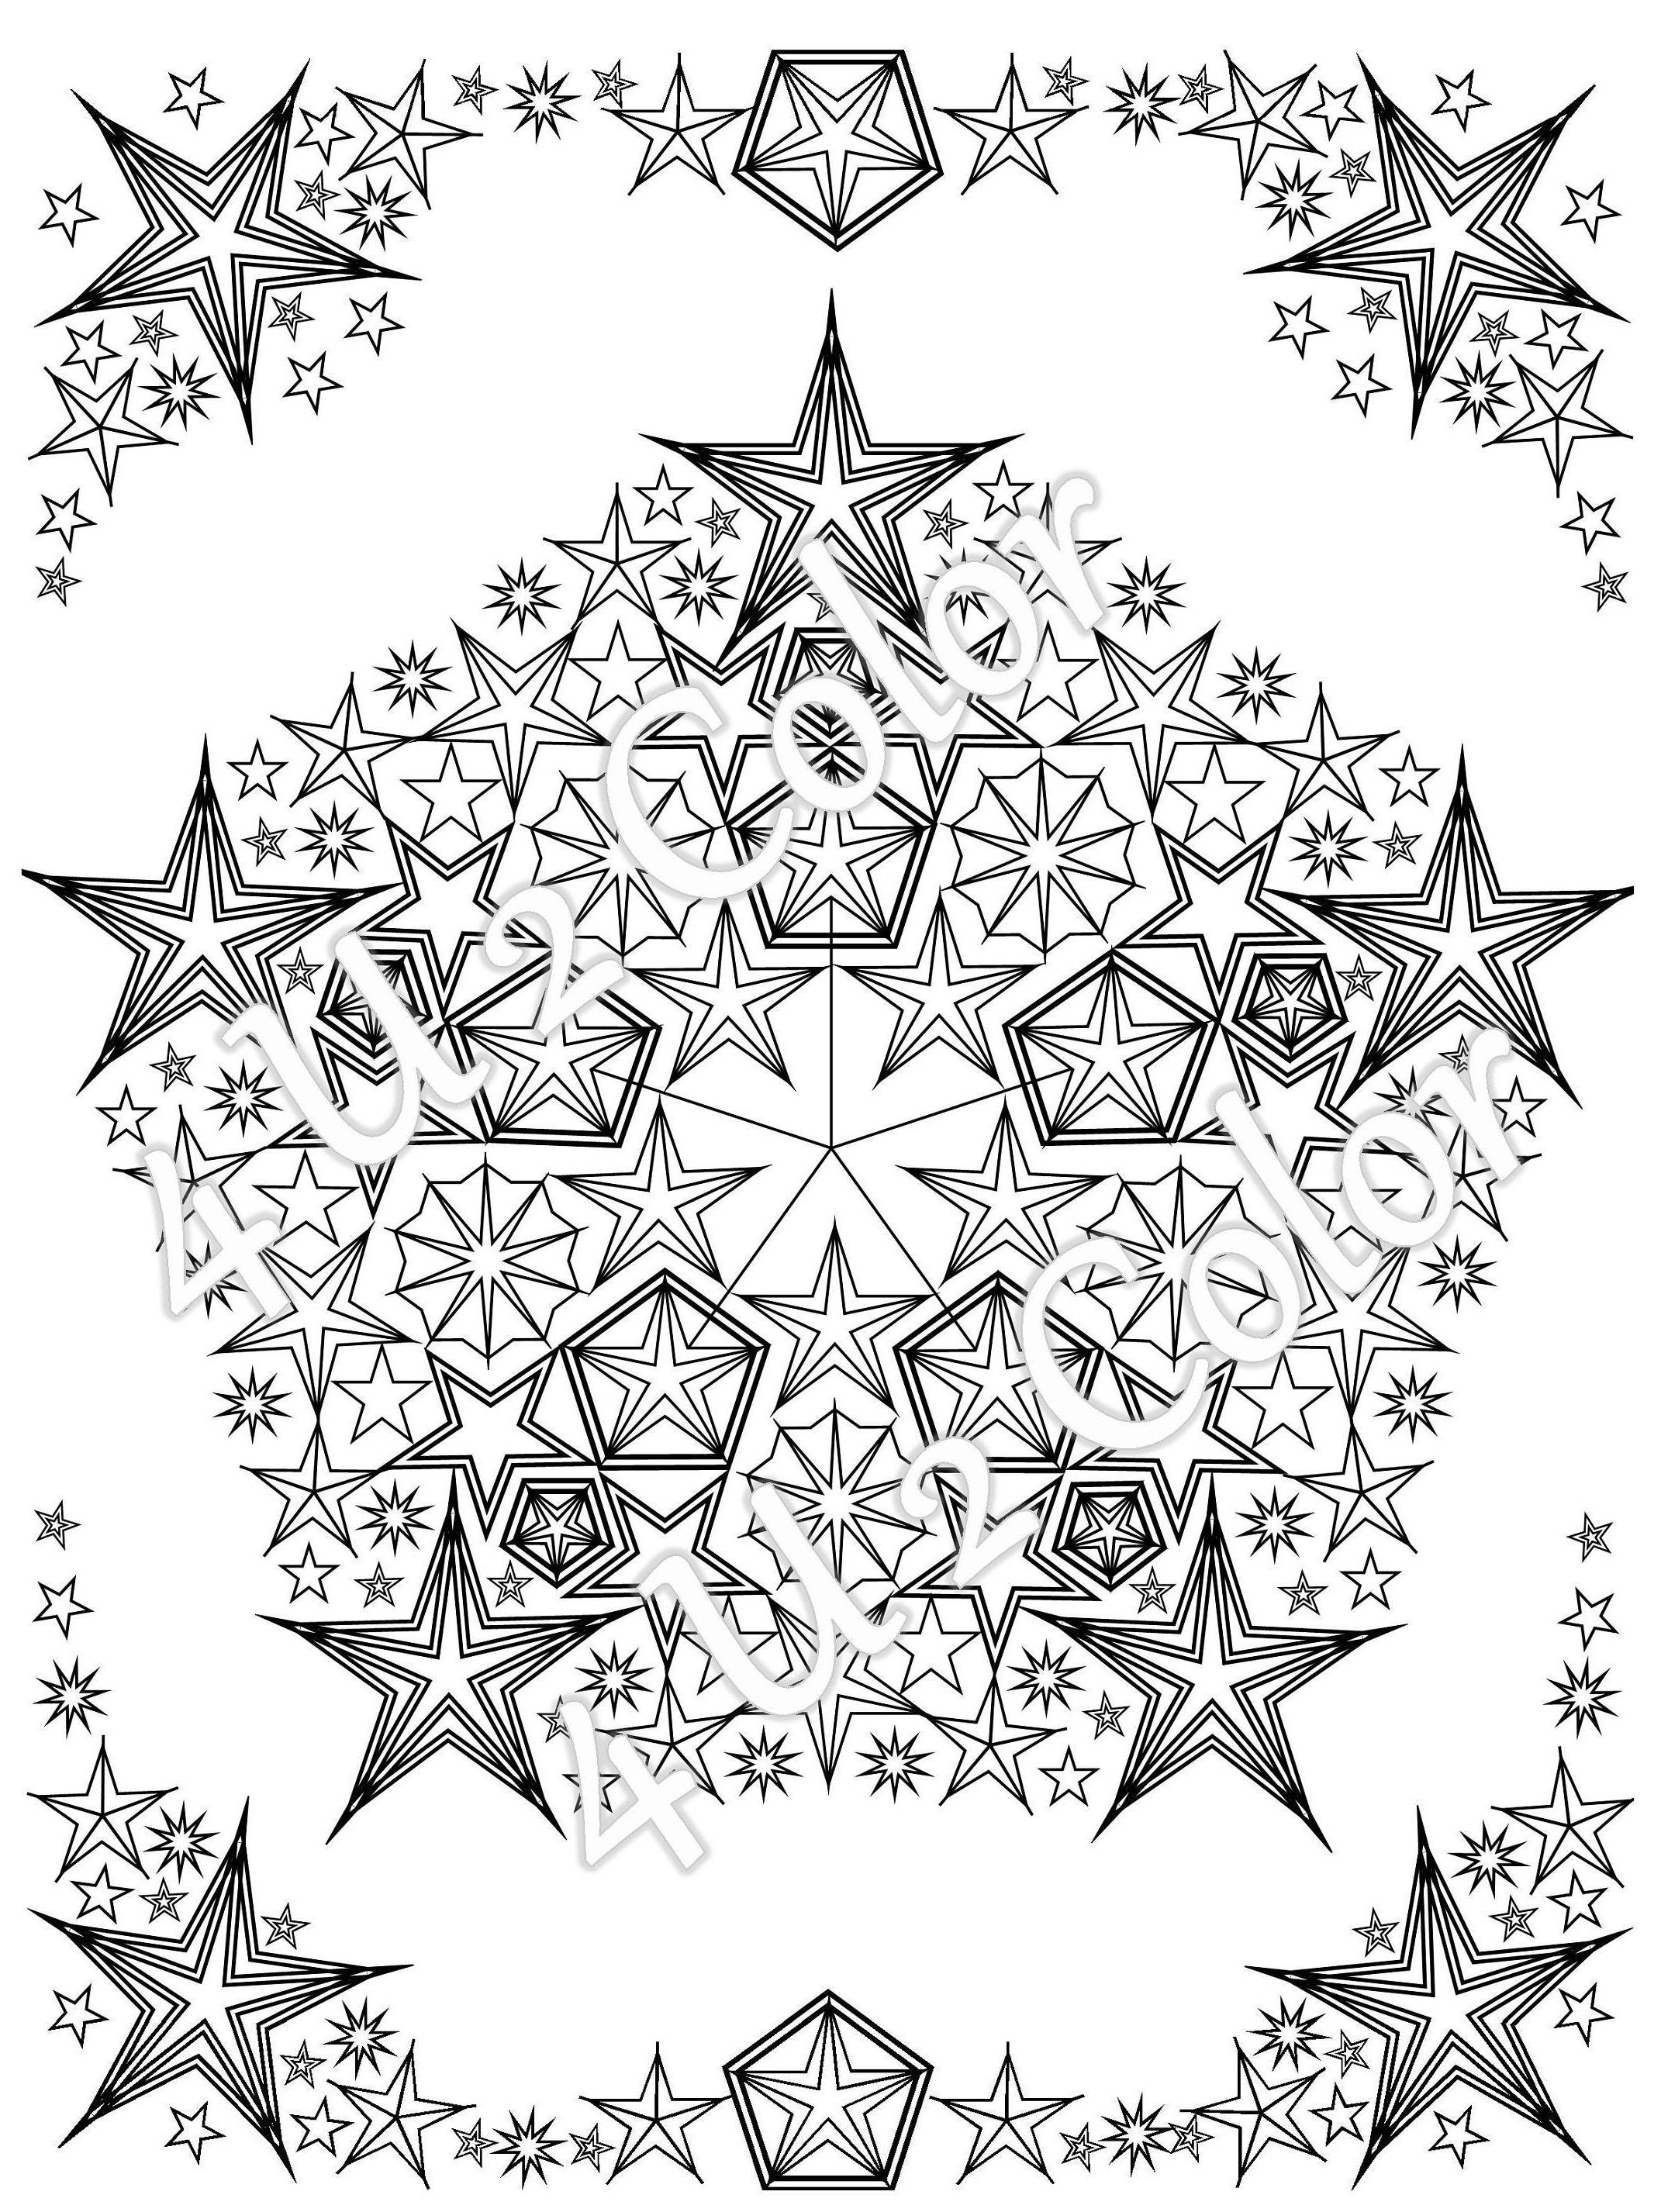 star mandala 2 coloring page star mandala coloring page starry